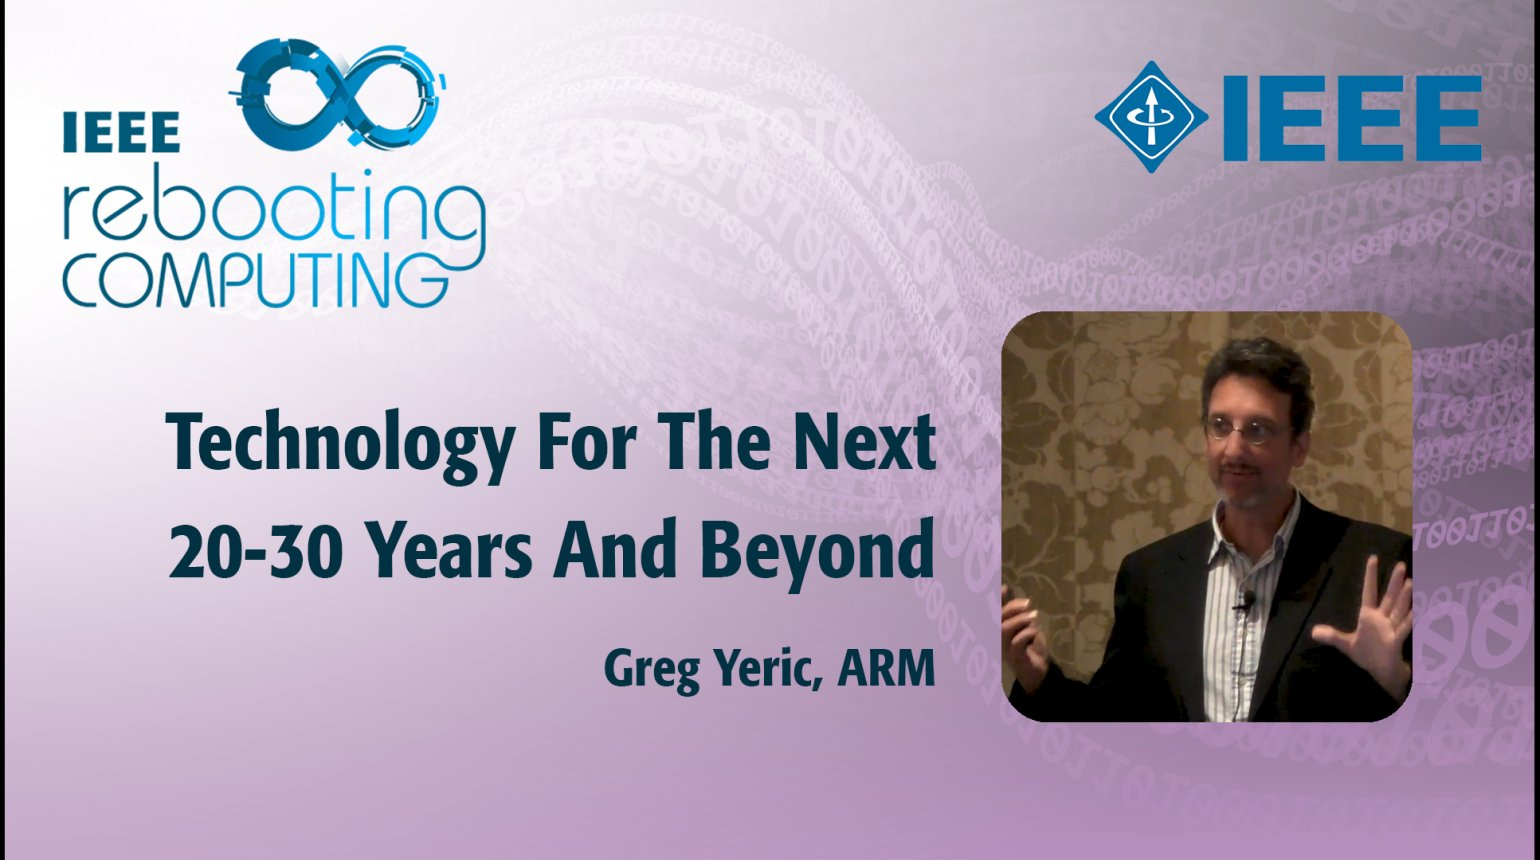 Technology For The Next 20-30 Years And Beyond - IEEE Rebooting Computing Industry Summit 2017